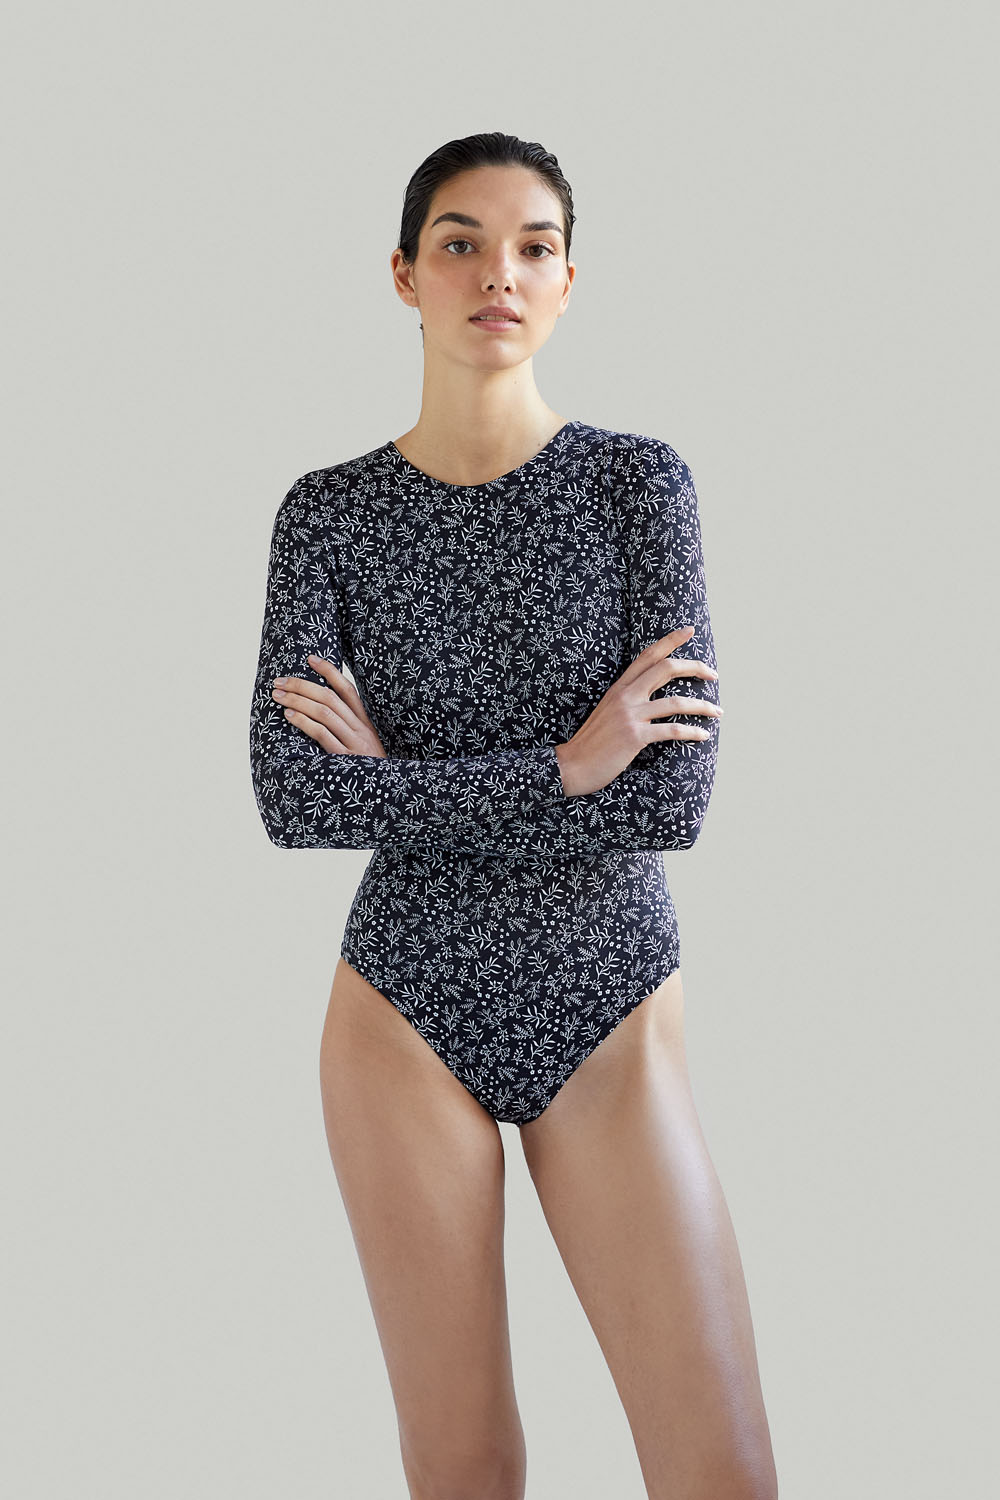 Sustainable Luxury Swimwear / Ropa de baño sostenible, eco bodysuit / bodysuit ecológico. Eugenie in anemone, by NOW_THEN